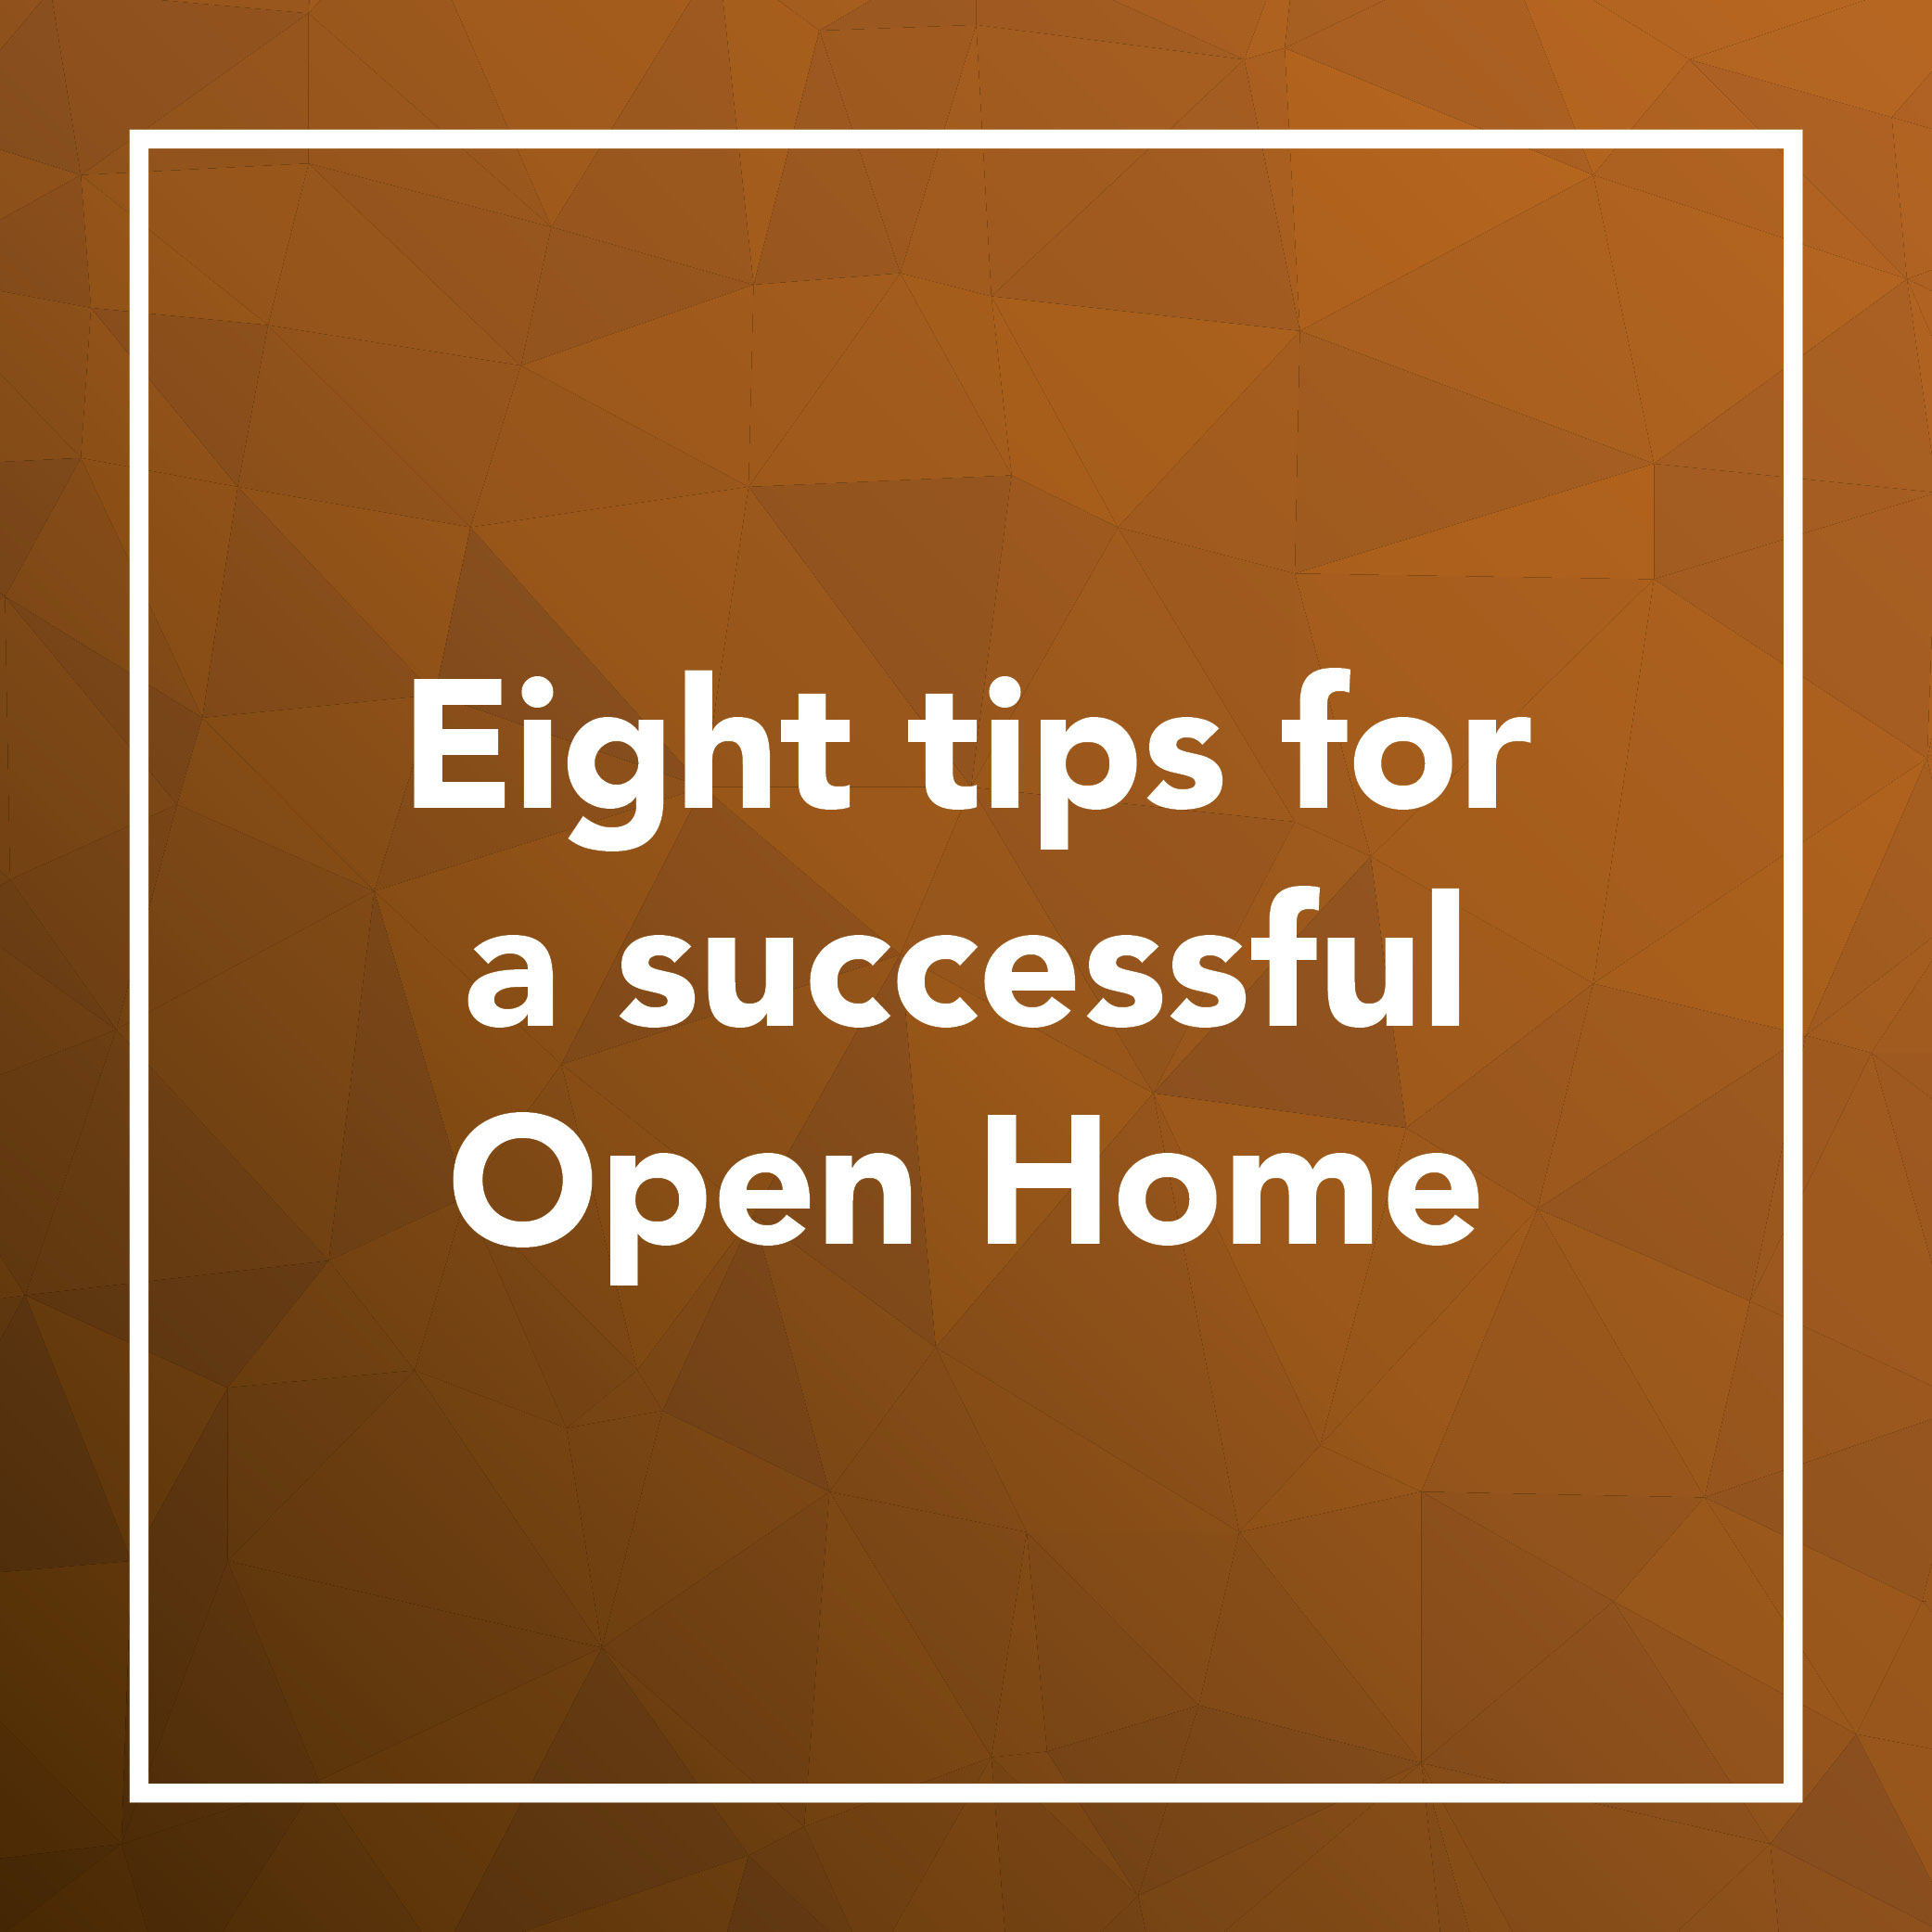 Preparing for an open home. - All the tips and tricks needed to help make your open home as successful as possible